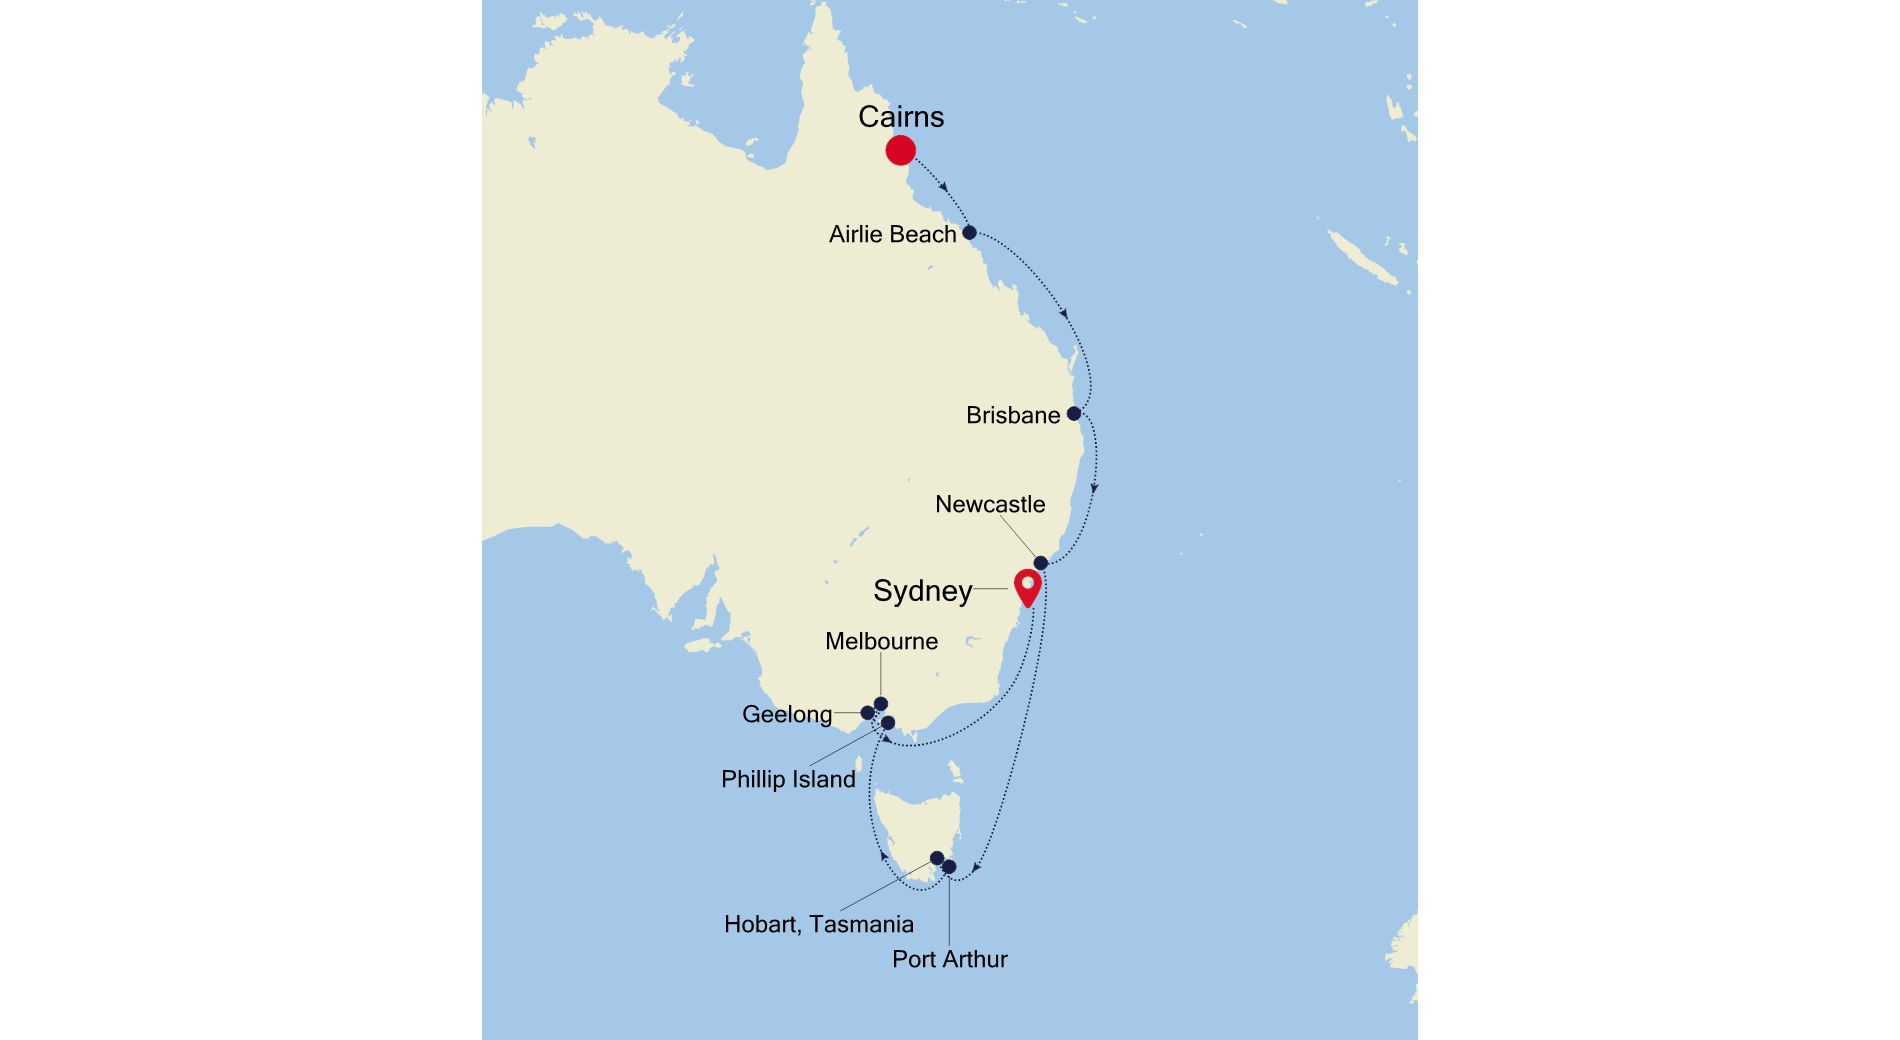 SS220119015 - Cairns to Sydney